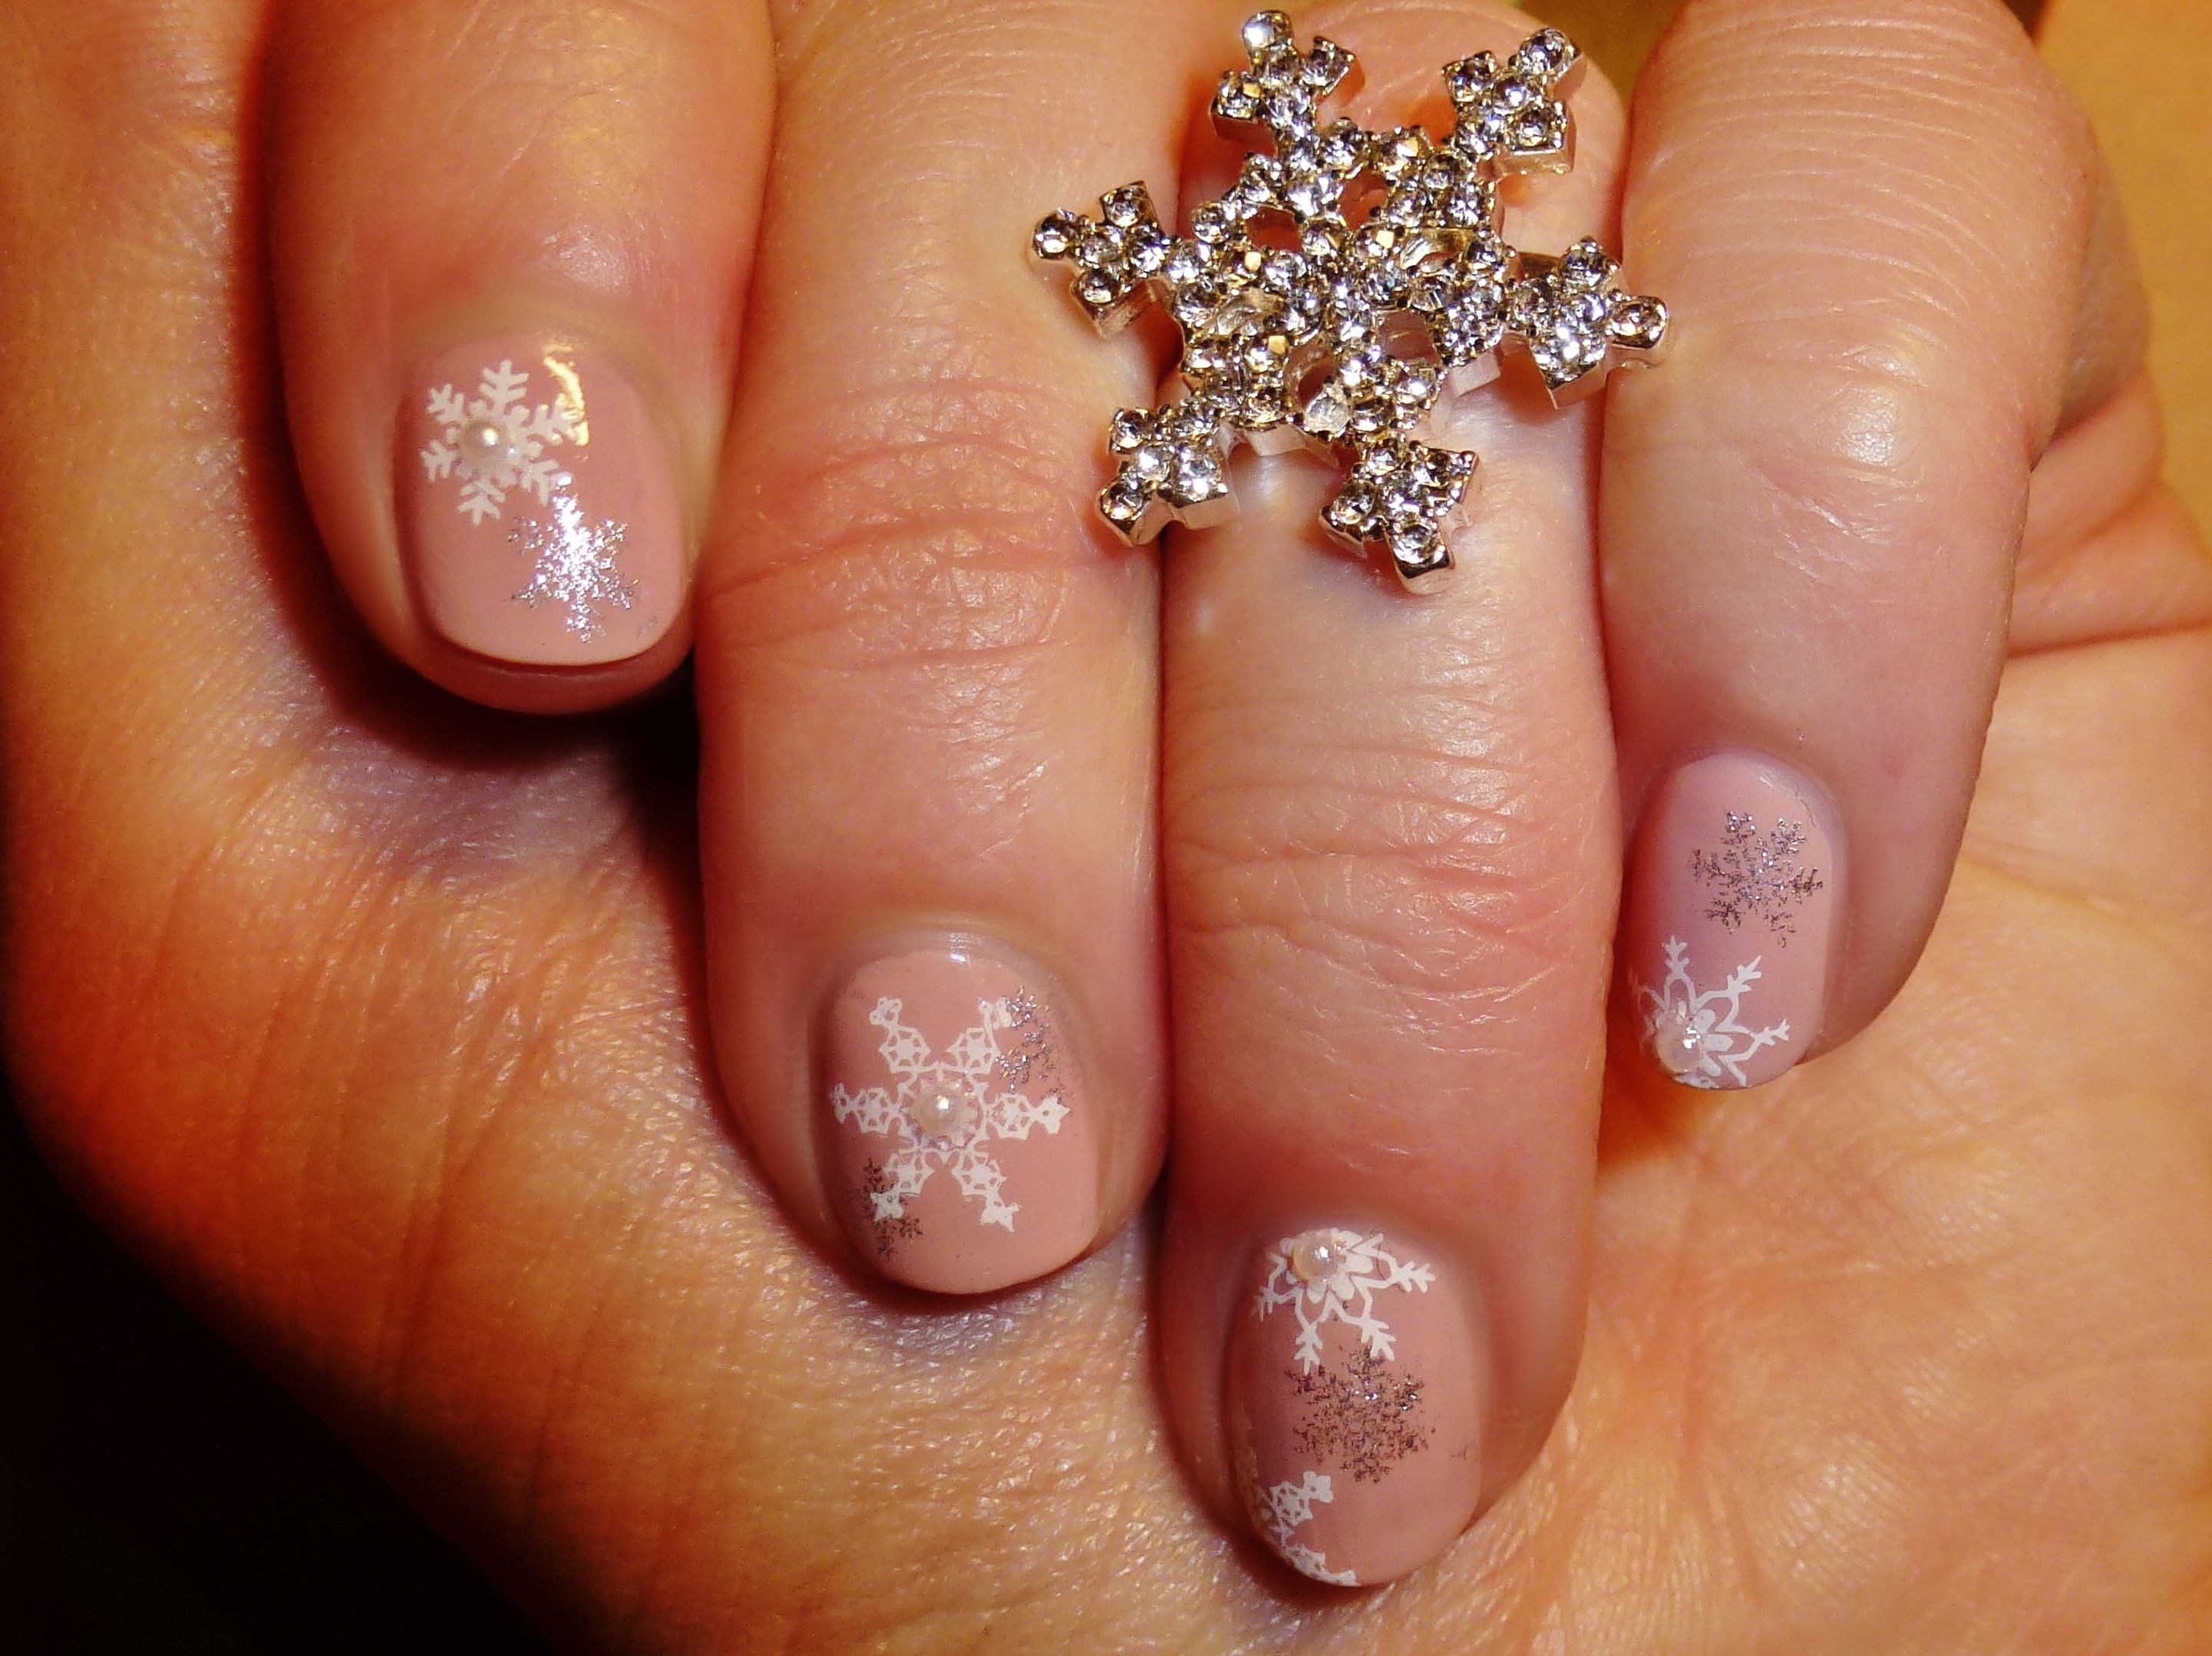 Hochzeitsnägel Apricot Snowflakes On Nude My Own Naildesign Pics Nail Designs